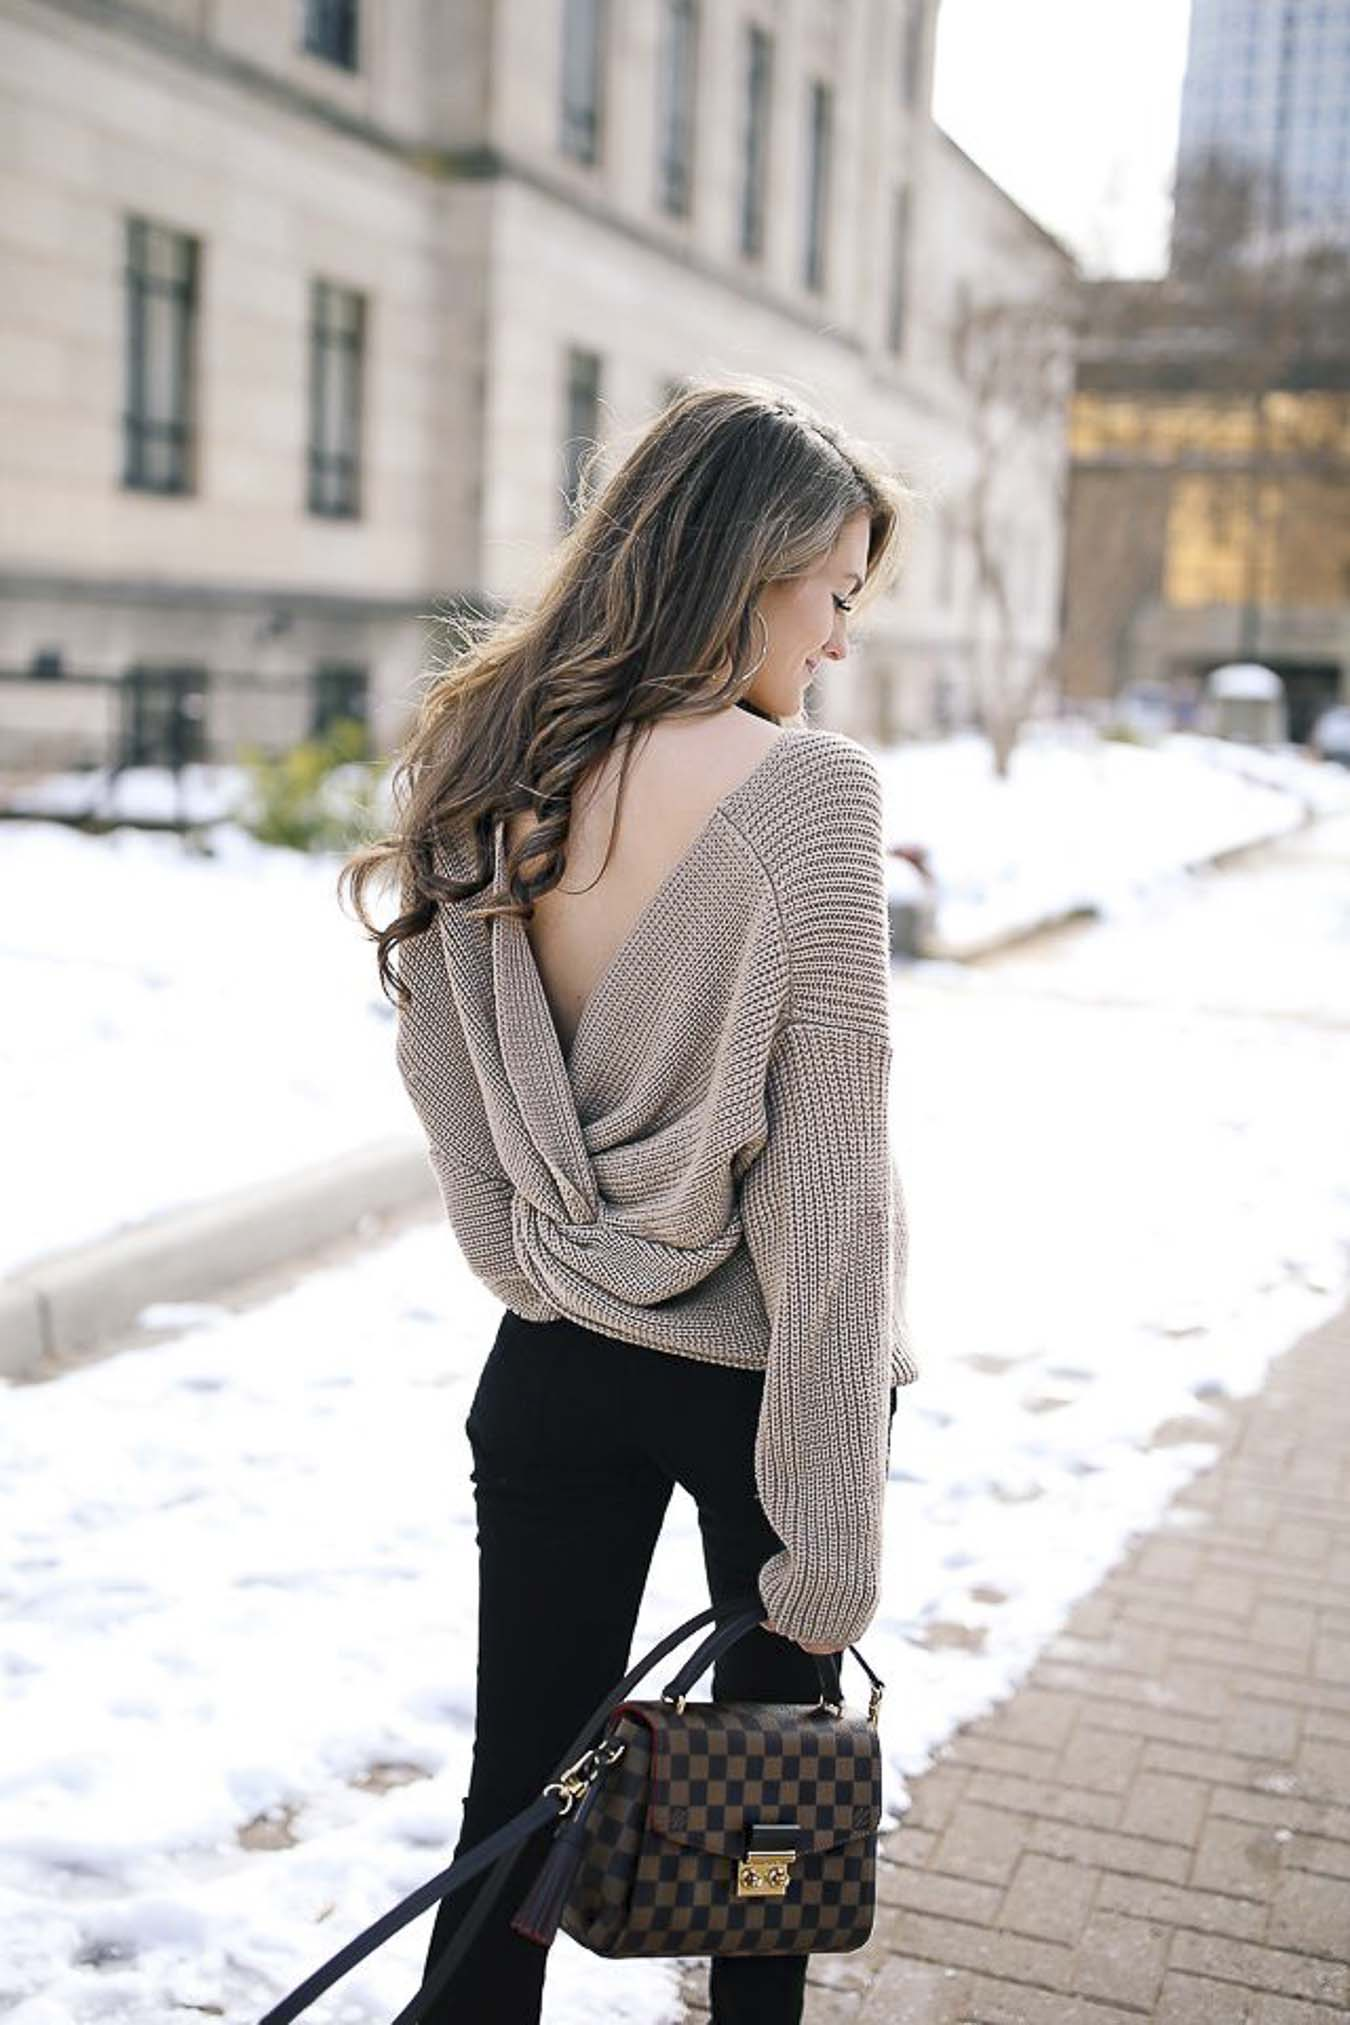 Winter-Fashion-Outfit-Ideas-Twisted-Sweater